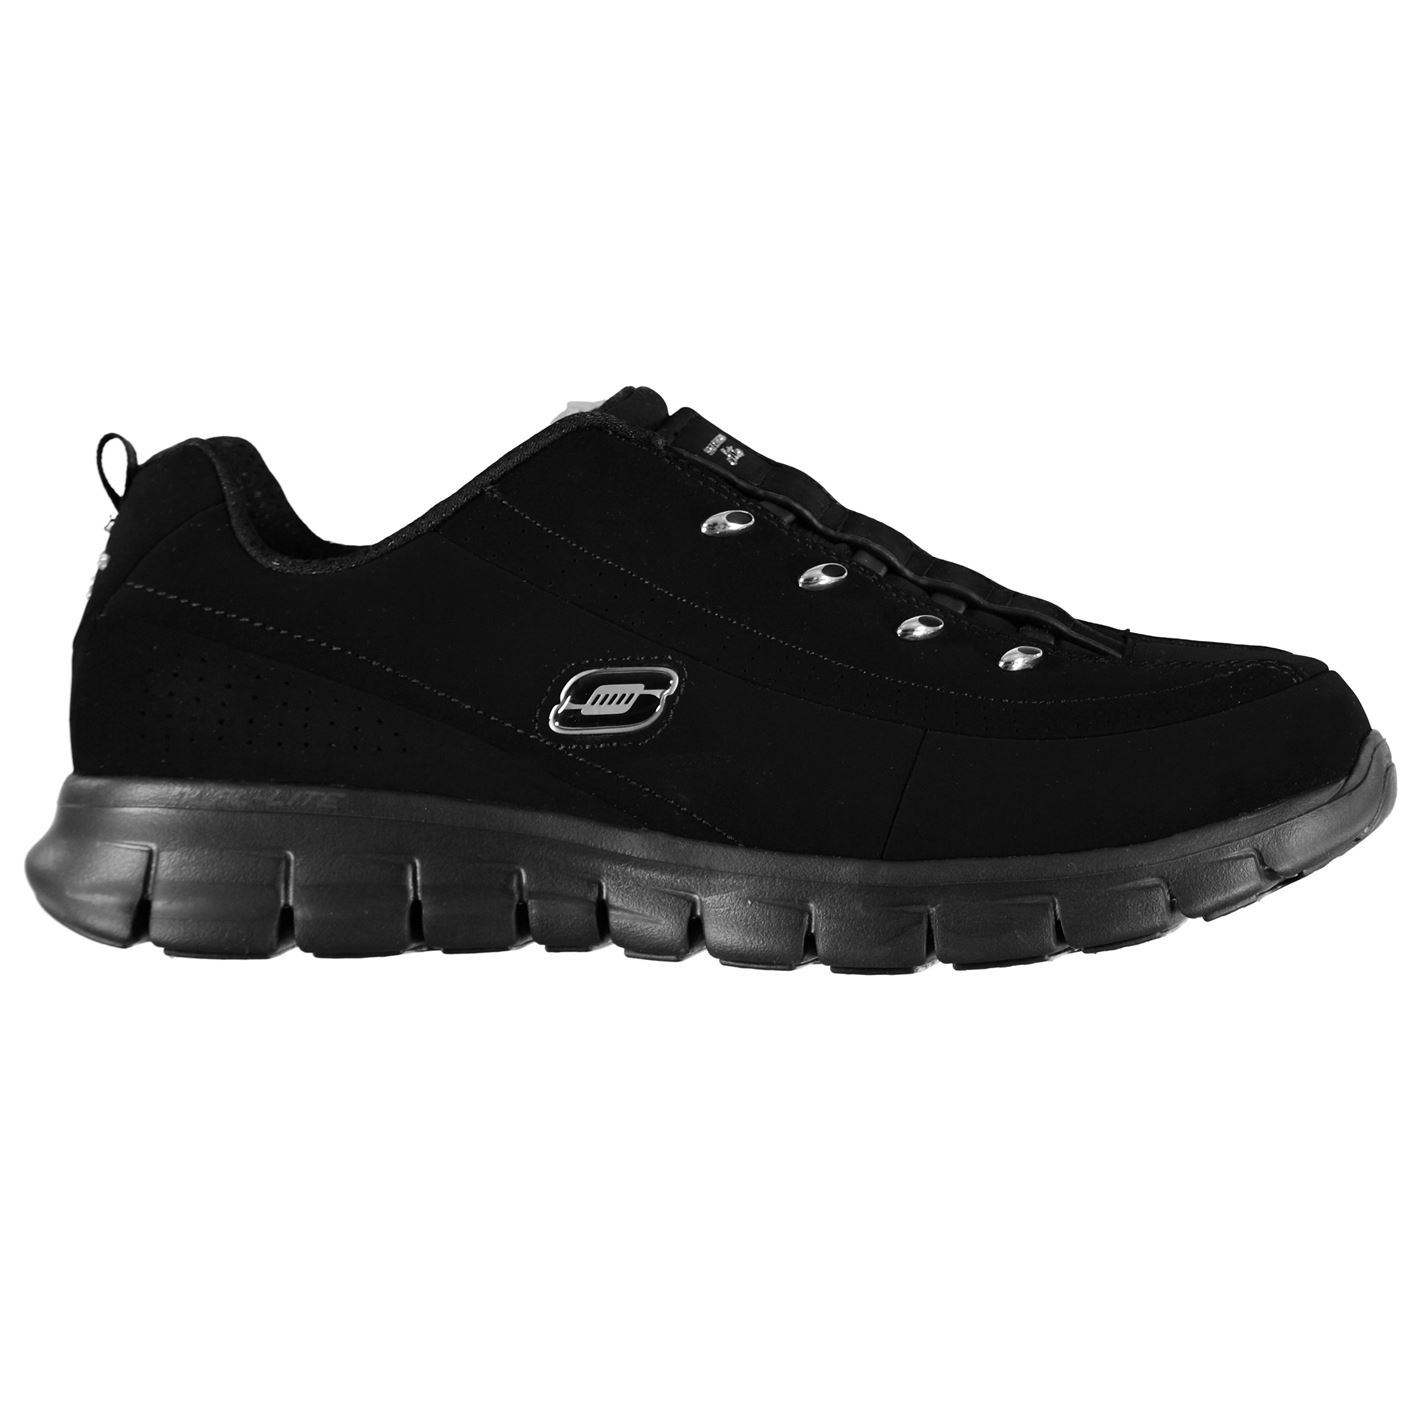 Ladies Black Shoes Womens Footwear